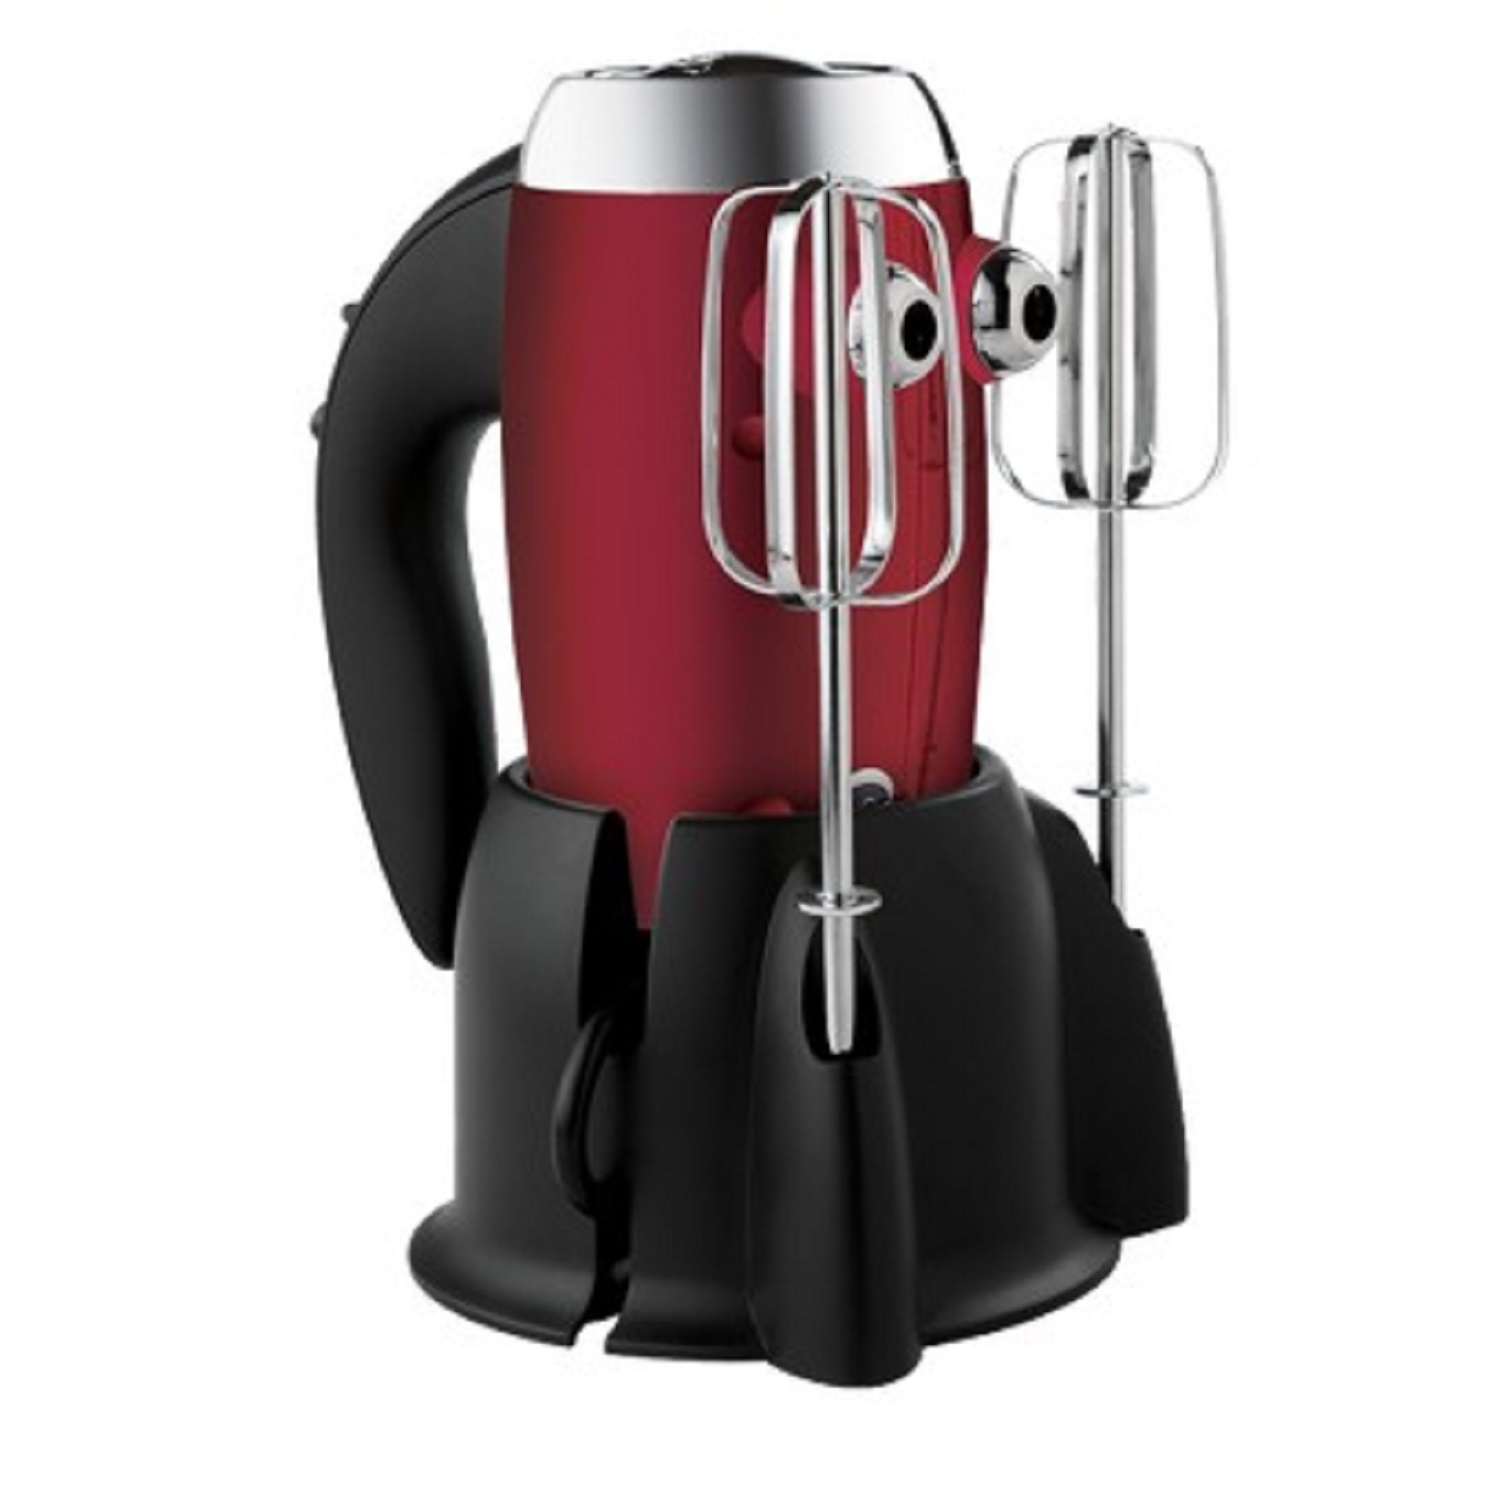 Sunbeam Heritage Hand Mixer -Metallic Red SKU: 002550-000-000 with Elite Tactical